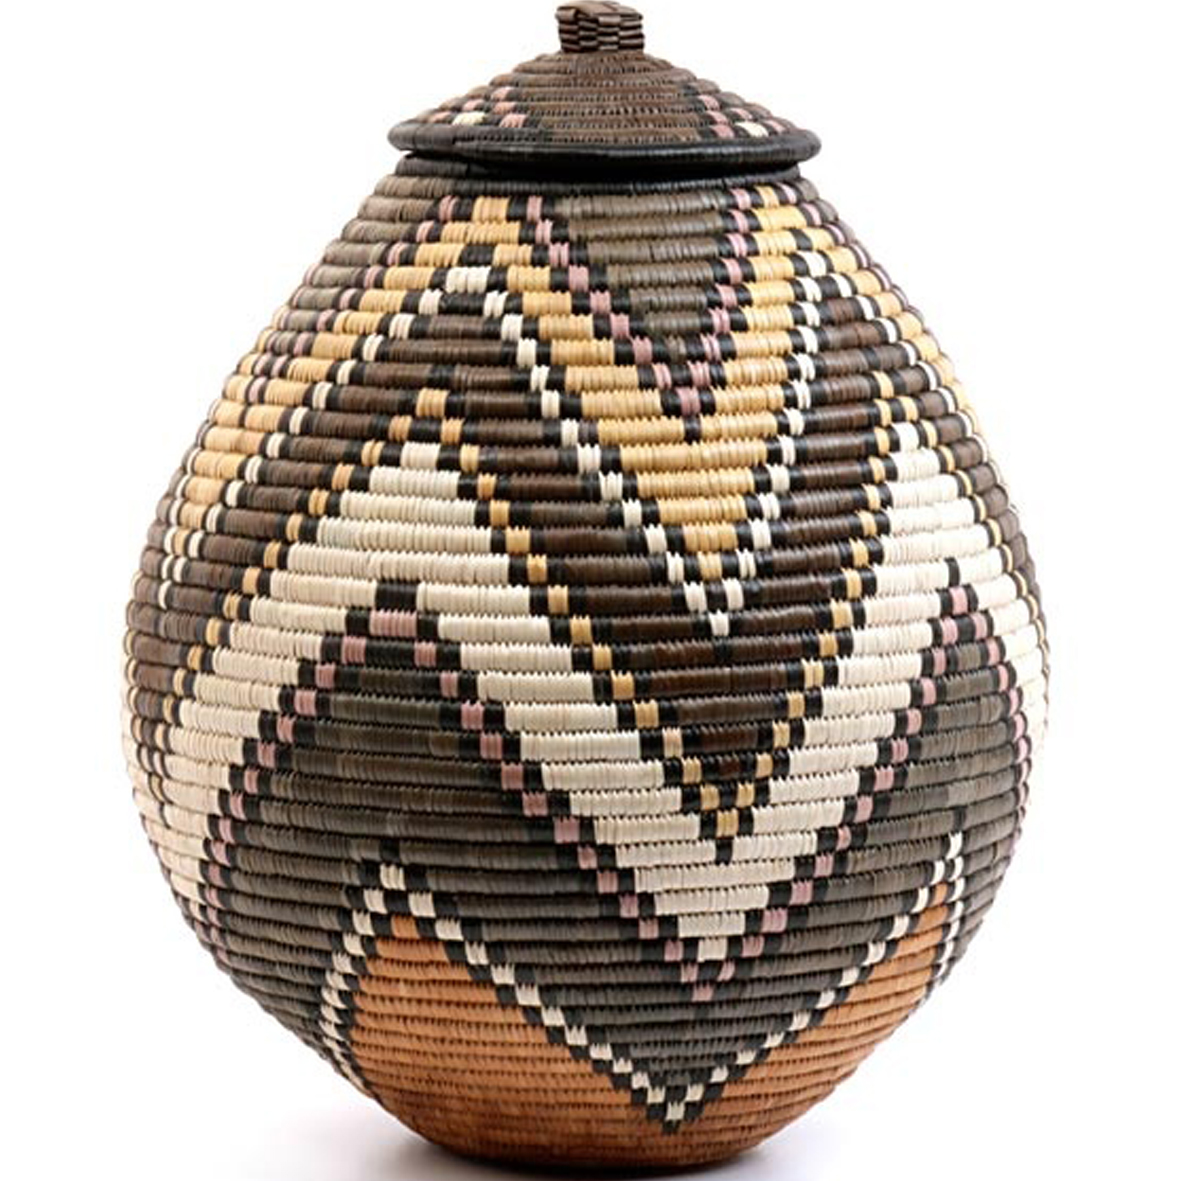 African Baskets: Iheartprintsandpatterns: African Basket Weaving